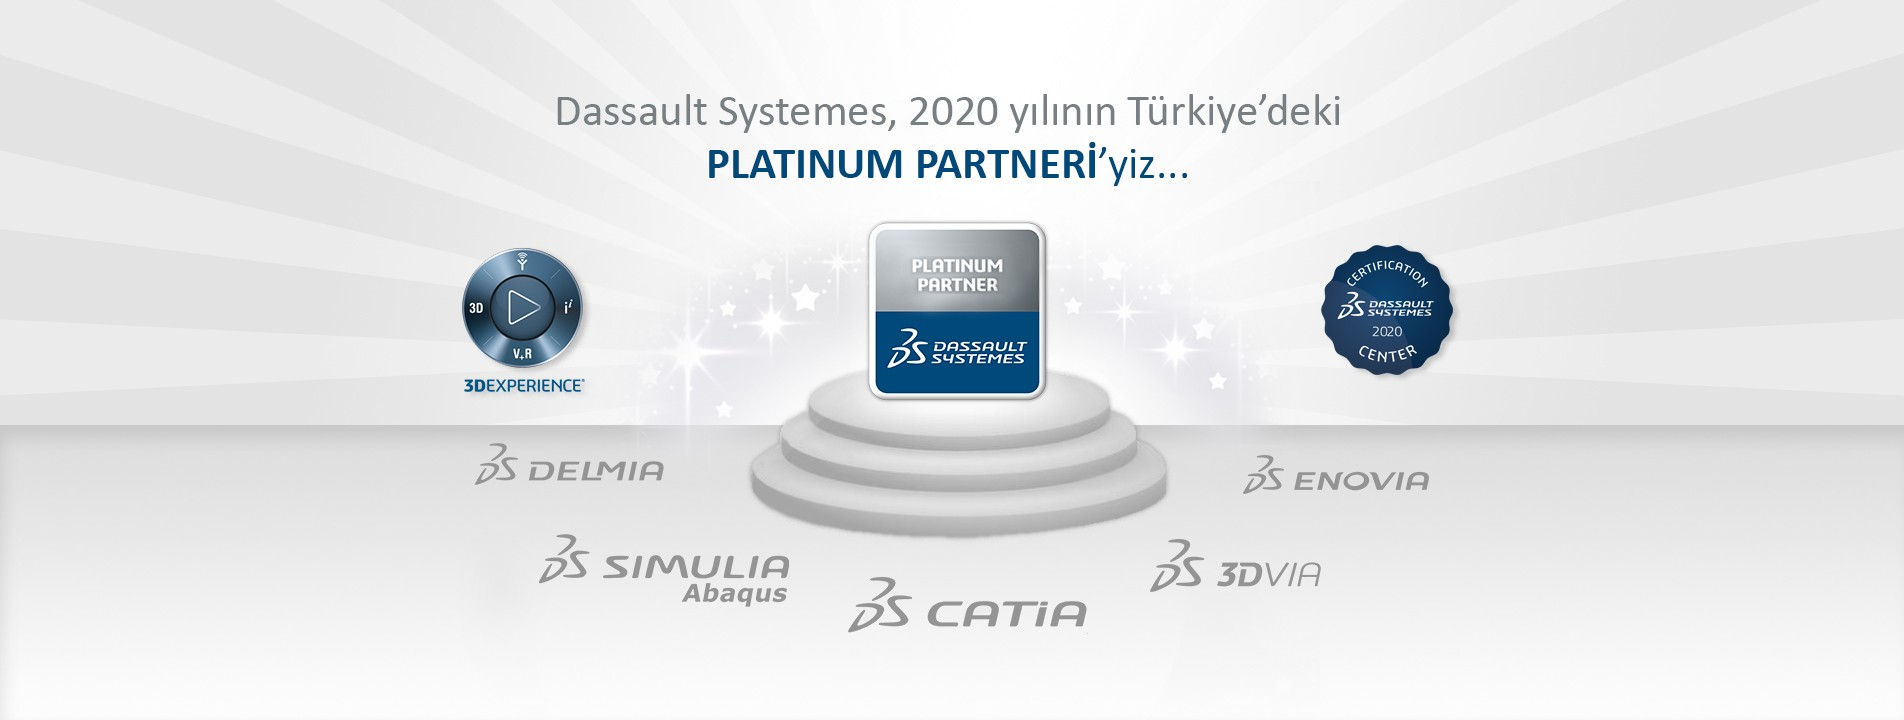 grup otomasyon dassault systemes awards